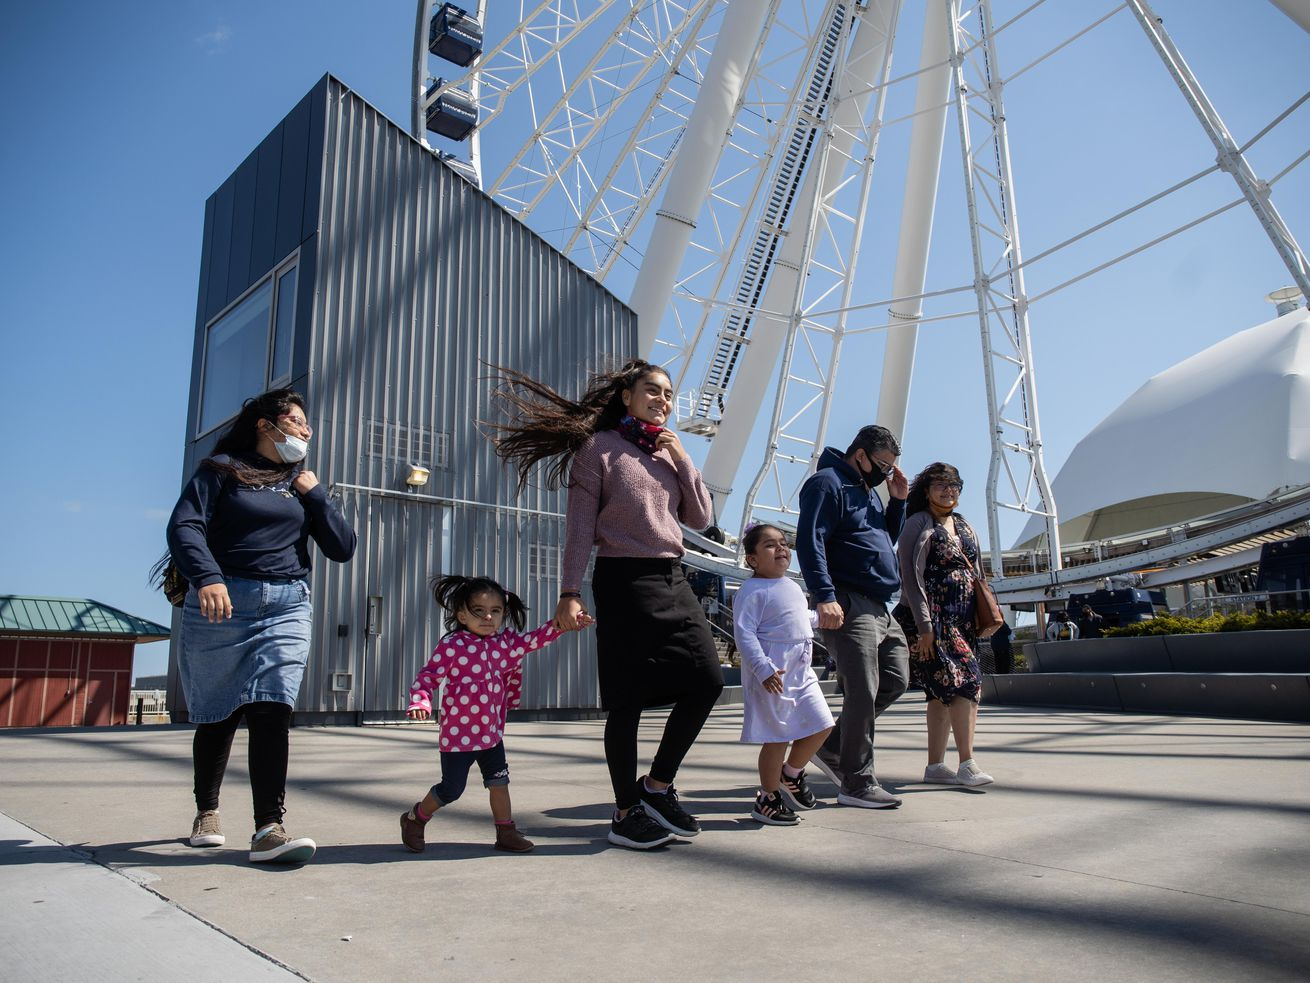 The Gomez family tours Navy Pier on its reopening day, Friday morning, April 30, 2021. Navy Pier closed in September 2020 due to the COVID-19 pandemic.